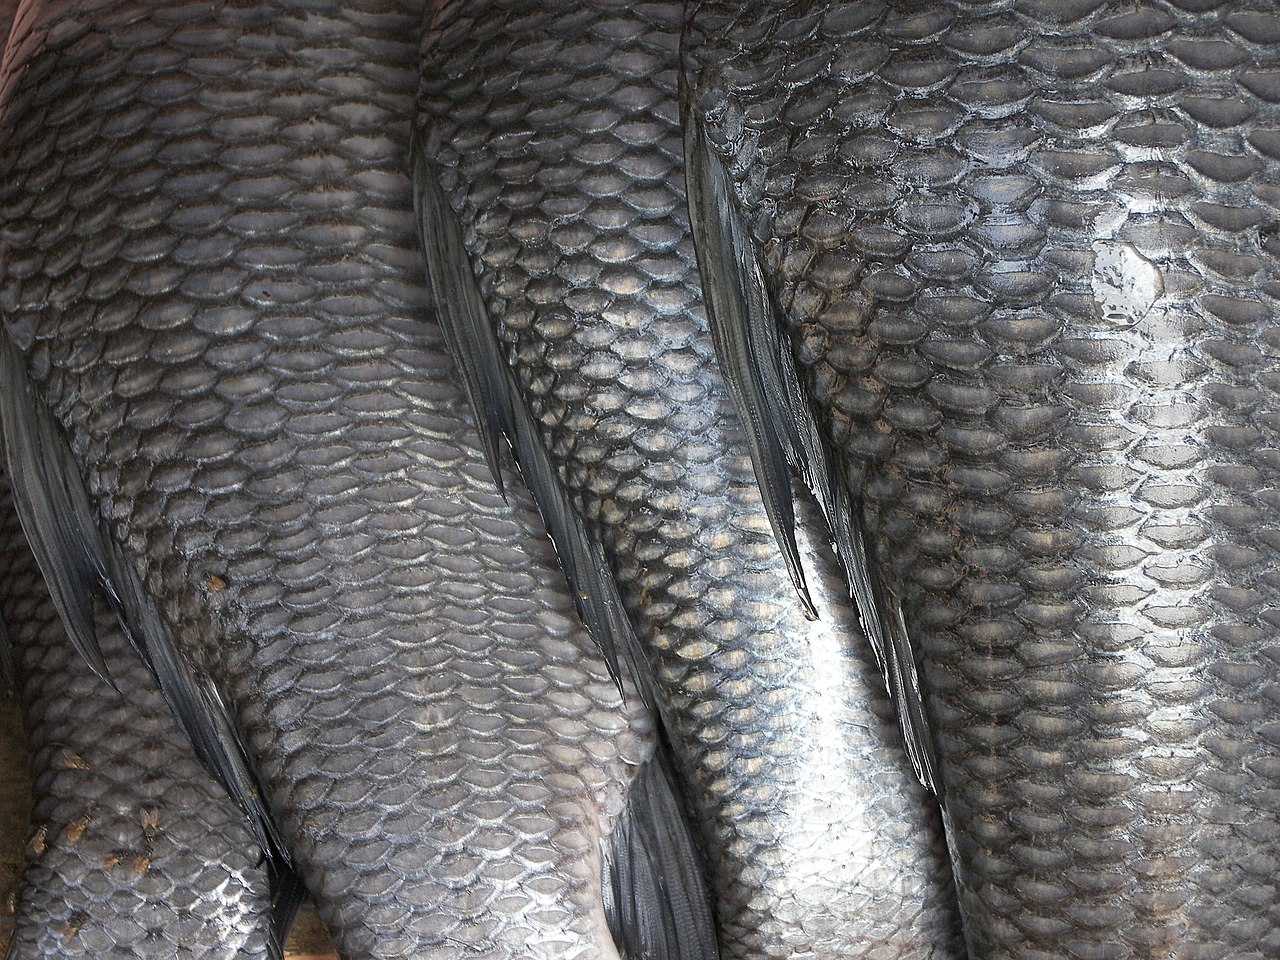 fish skins and scales are unwanted parts that can be turned into bioplastic. photo by Rajesh dangi Wikimedia Commons